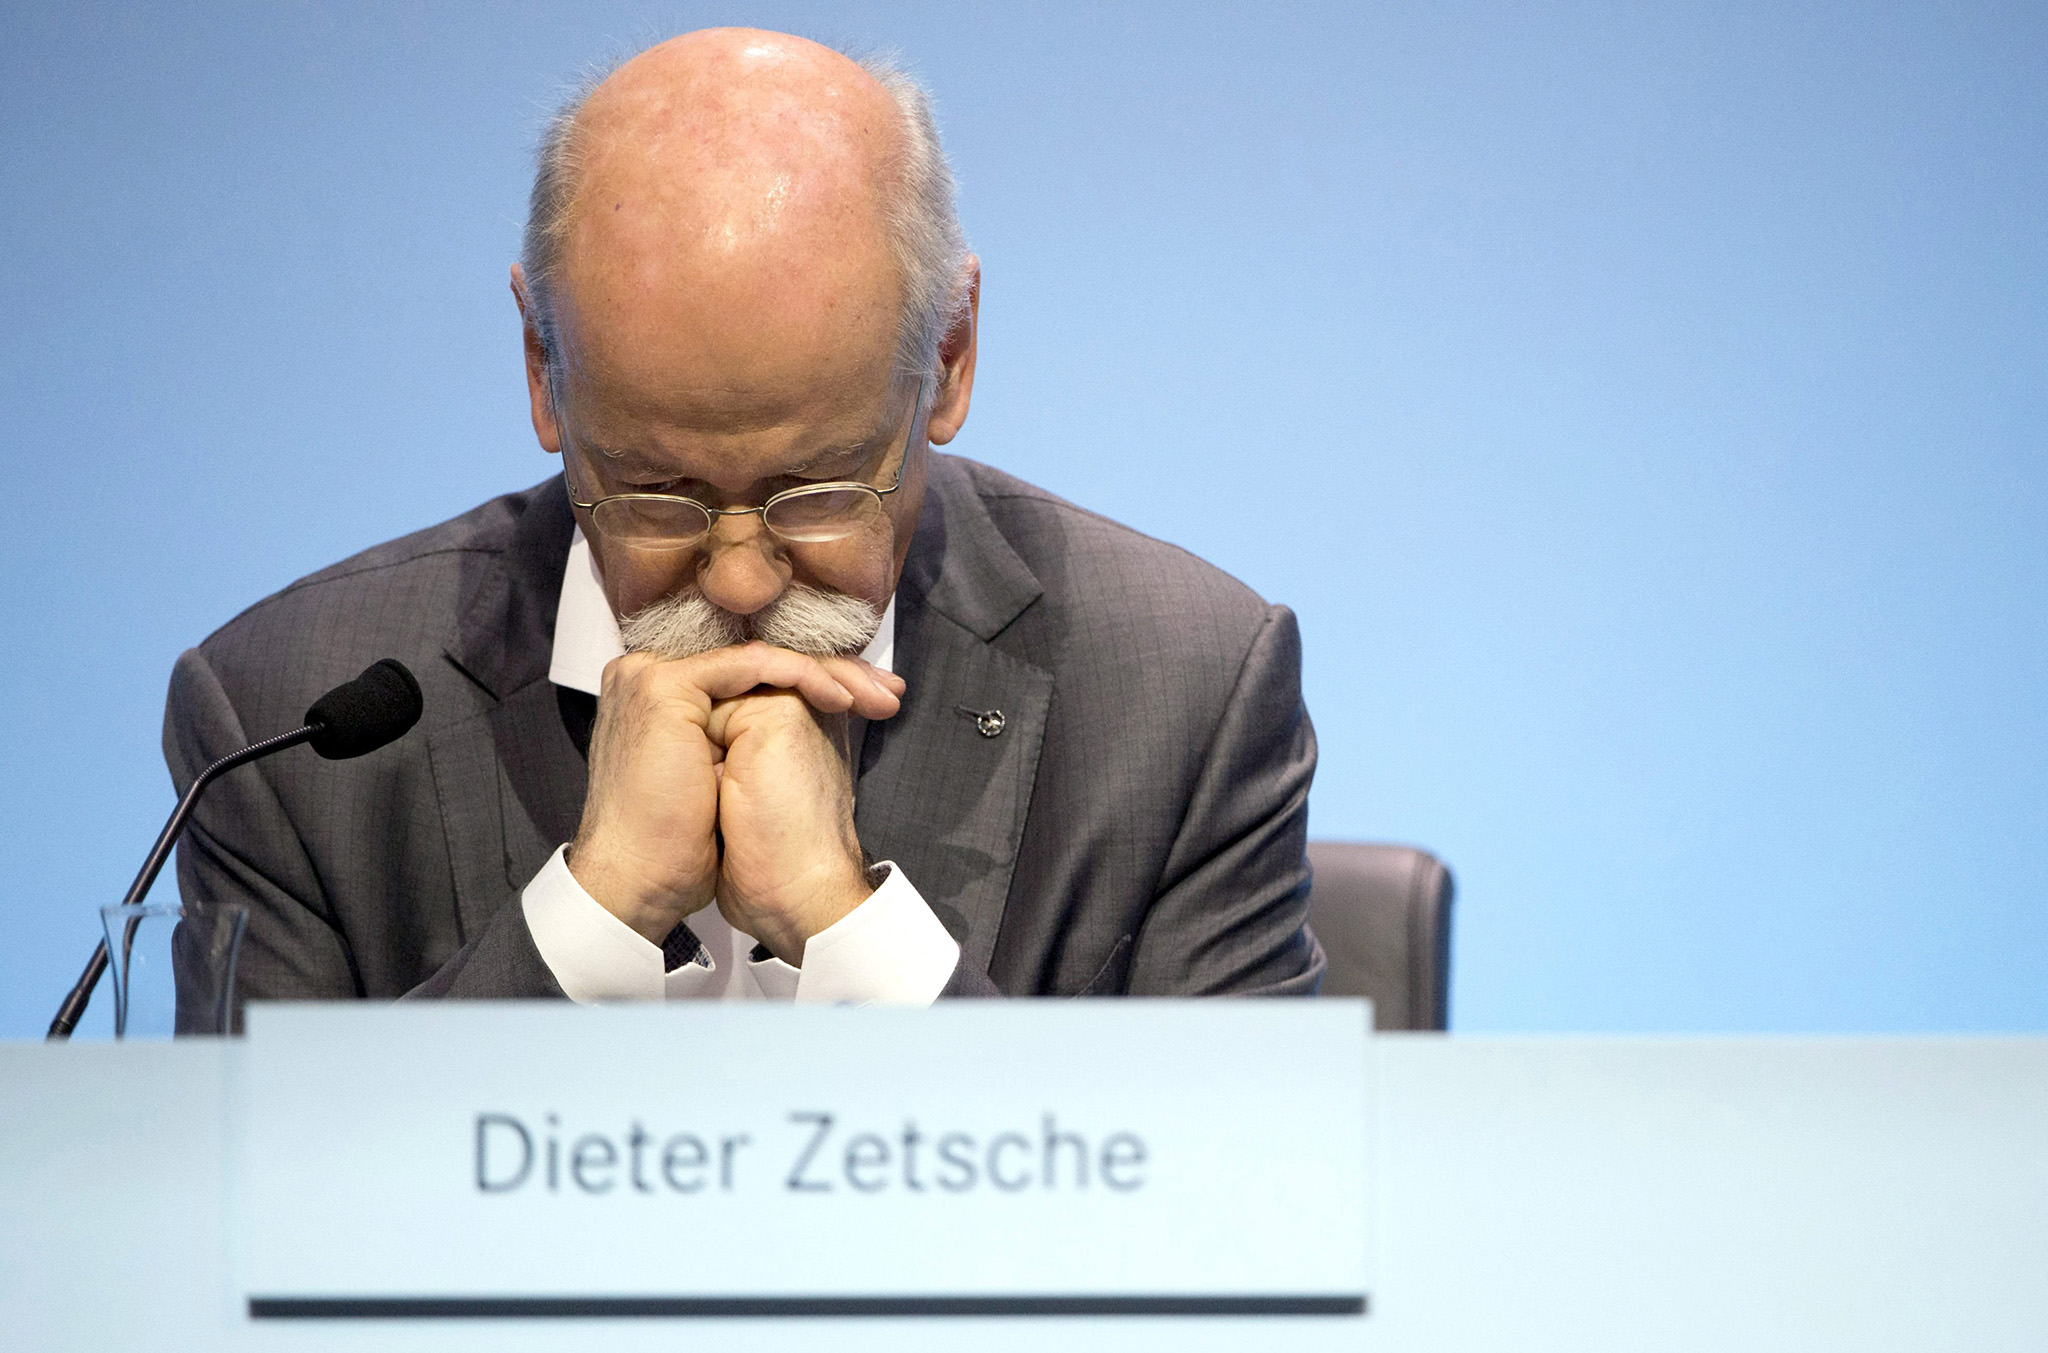 Daimler AGÂ CEO Dieter Zetsche reacts as he attends the annual press conference of German automotive corporation Daimler in Stuttgart, Germany